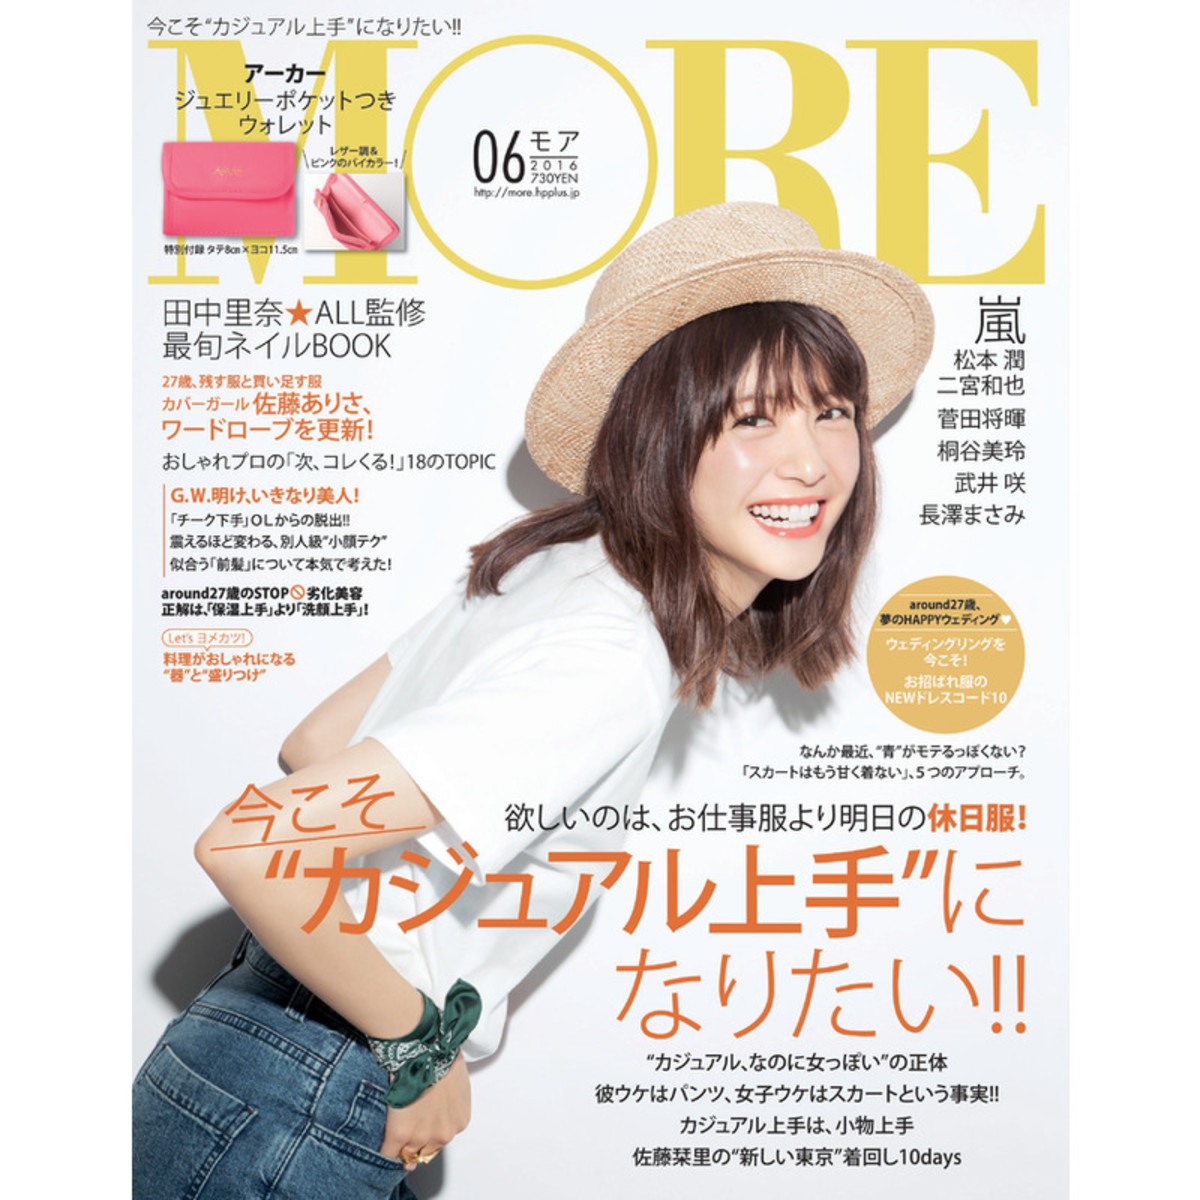 10 Popular Japanese Fashion Magazines for Women